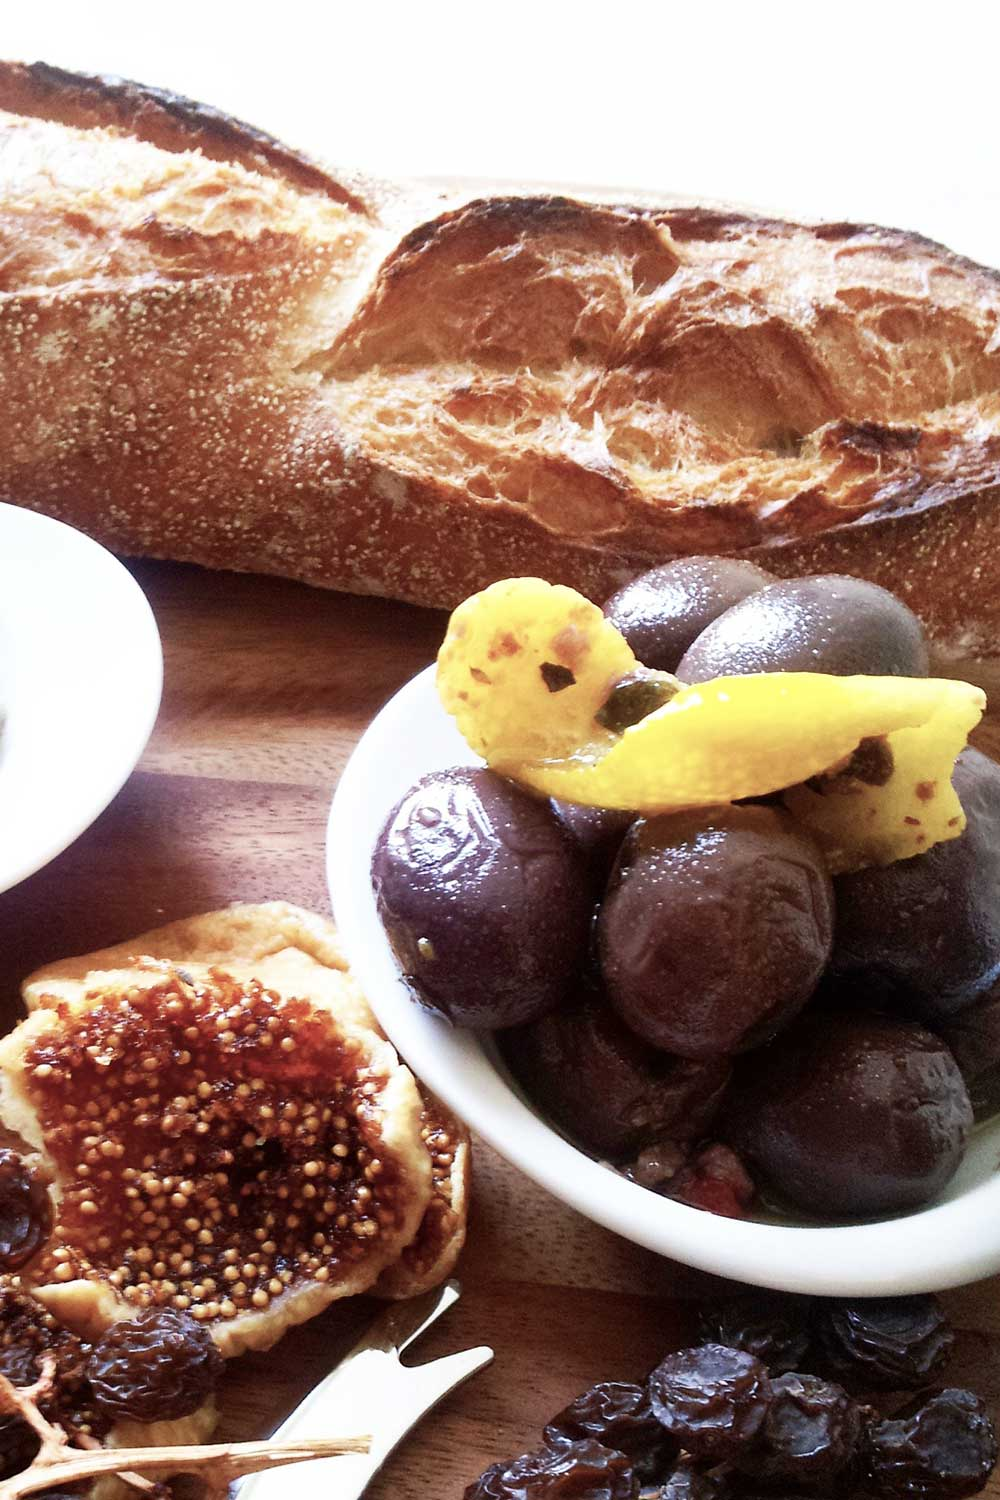 Apres Share Plate of bread olives and figs